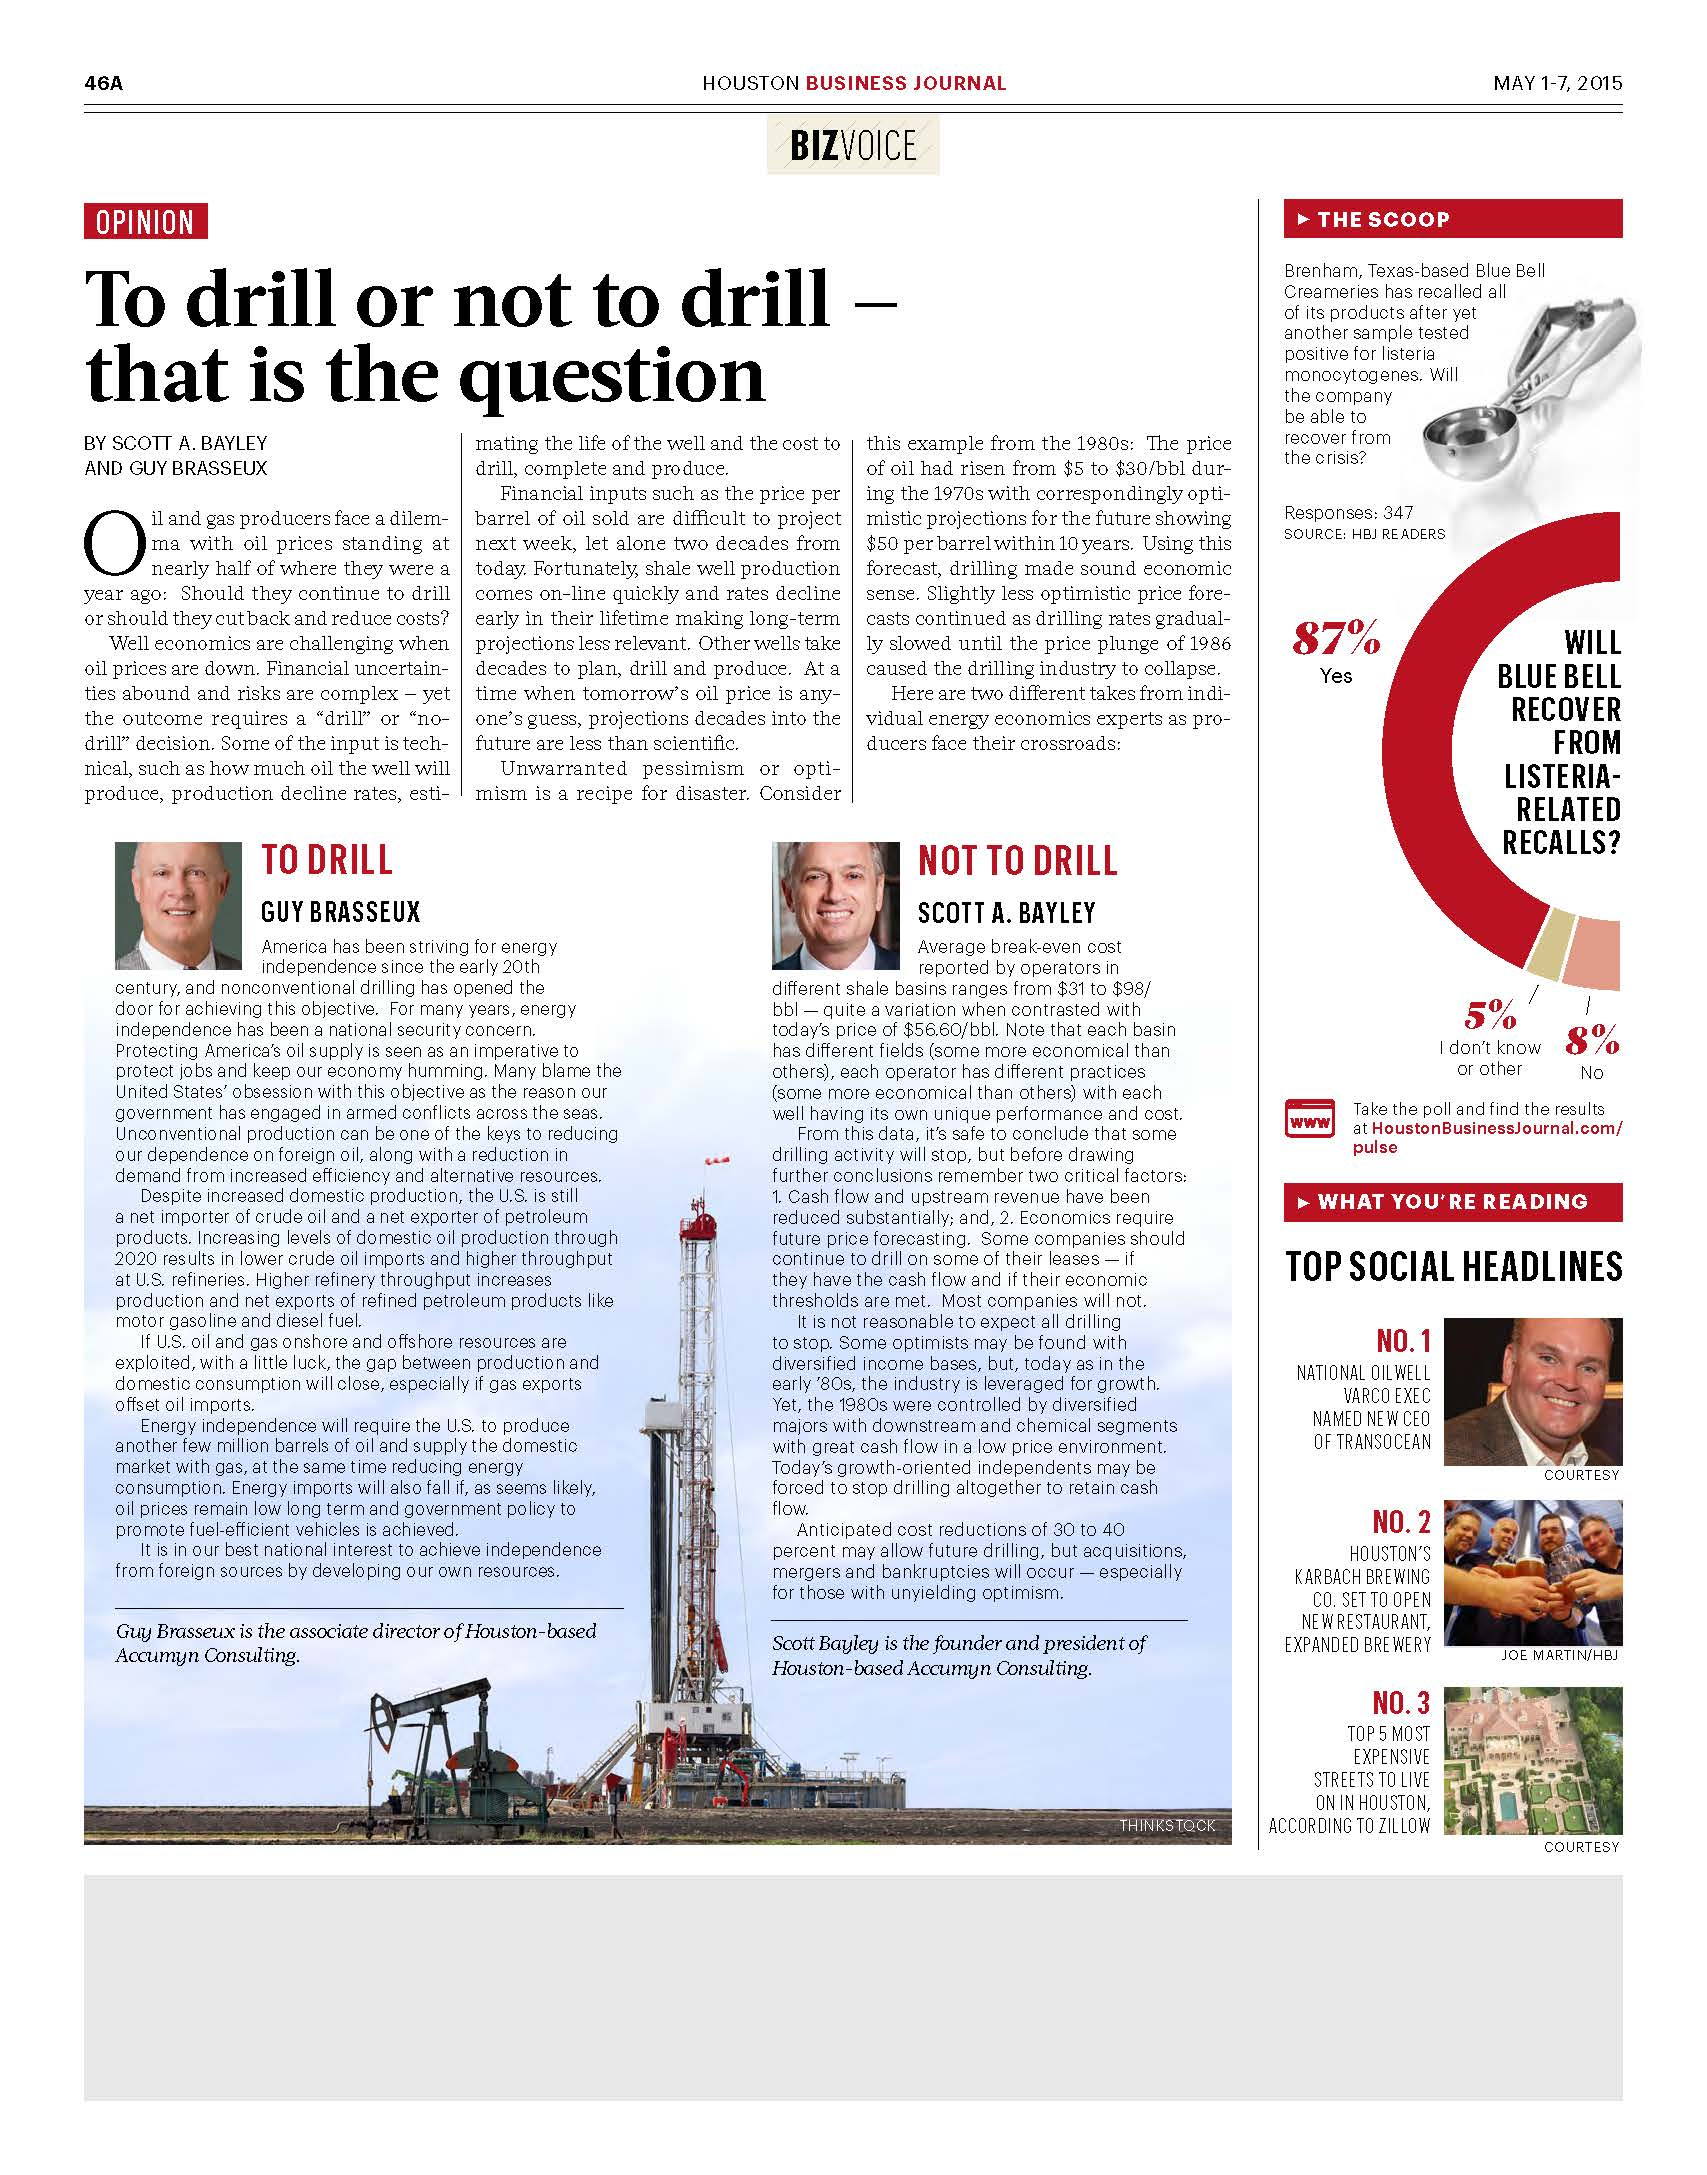 To drill or not to drill that is the questions by Scott Bayley and Guy Brasseux, May 1-7 2015 reduce